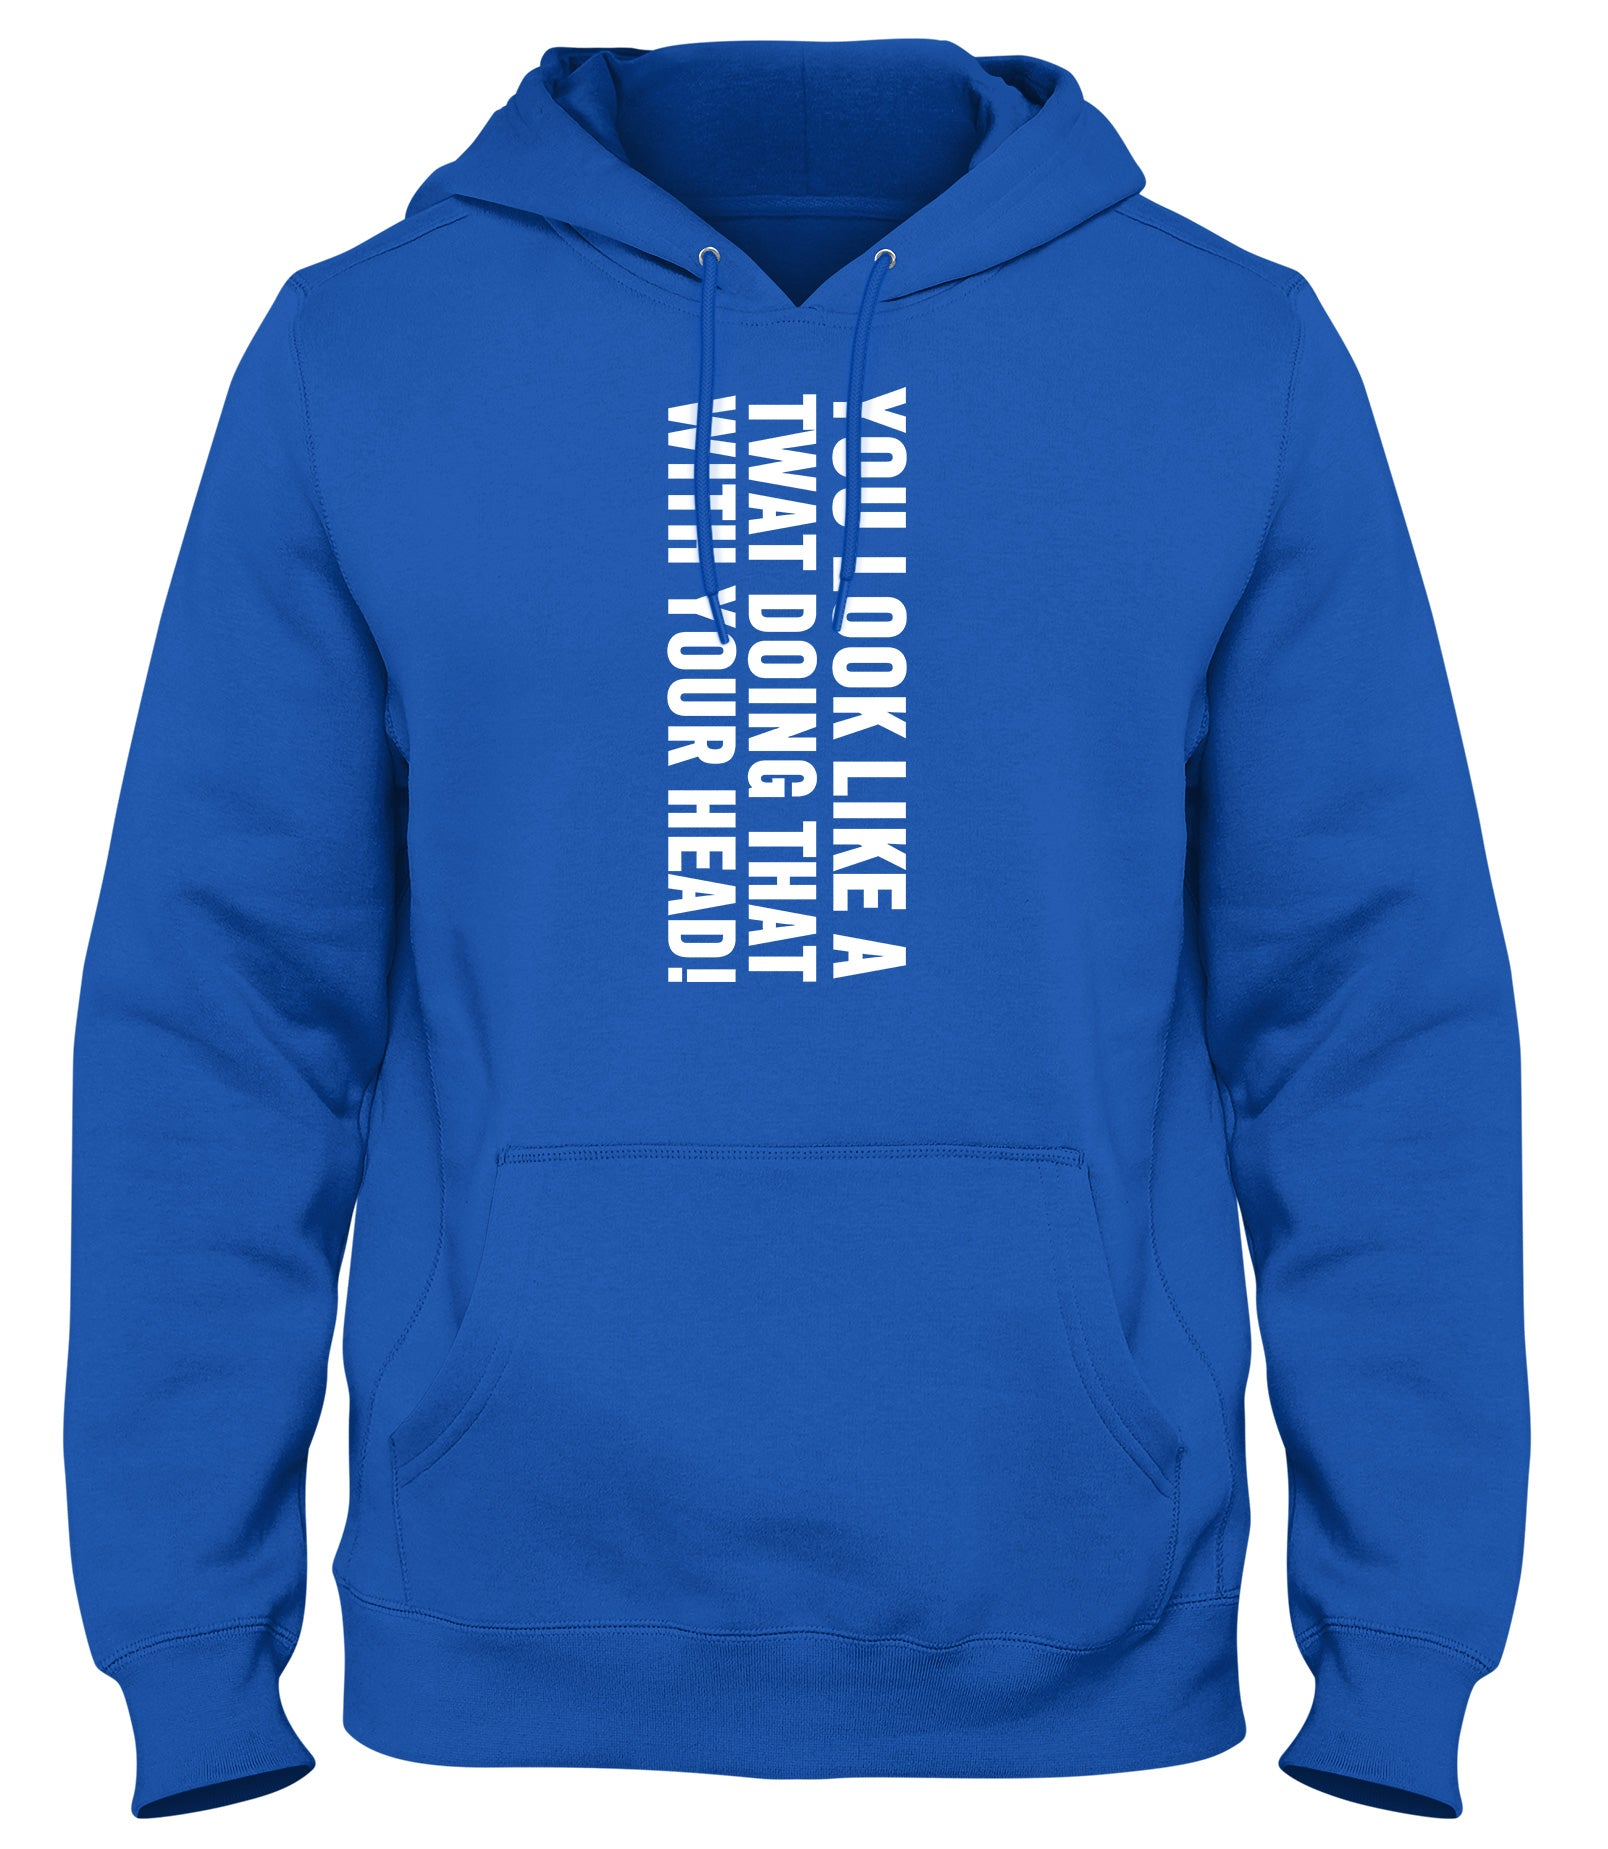 YOU LOOK LIKE A TWAT DOING THAT WITH YOUR HEAD MENS WOMENS LADIES UNISEX FUNNY SLOGAN HOODIE